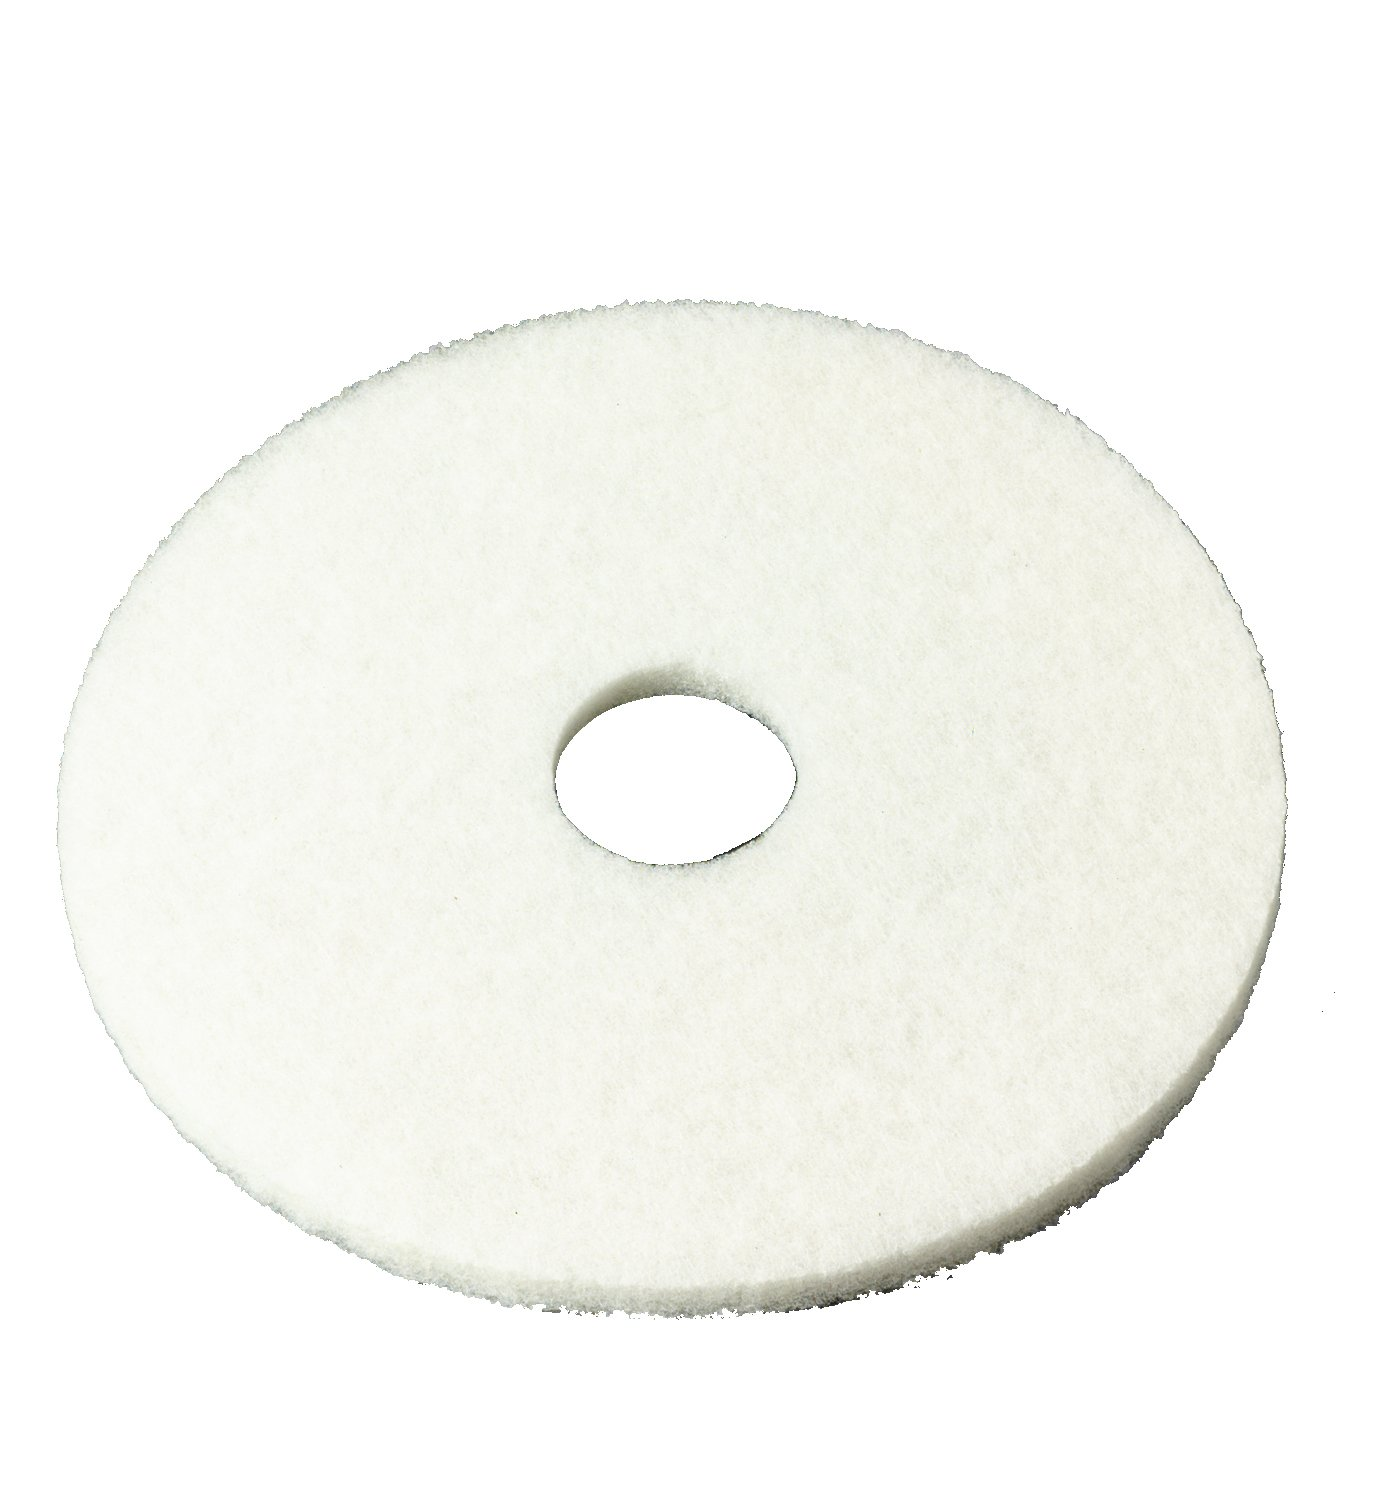 3M White Super Polish Pad 4100, 16' Floor Pad, Machine Use (Case of 5) 16 Floor Pad 3M Industrial Market Center